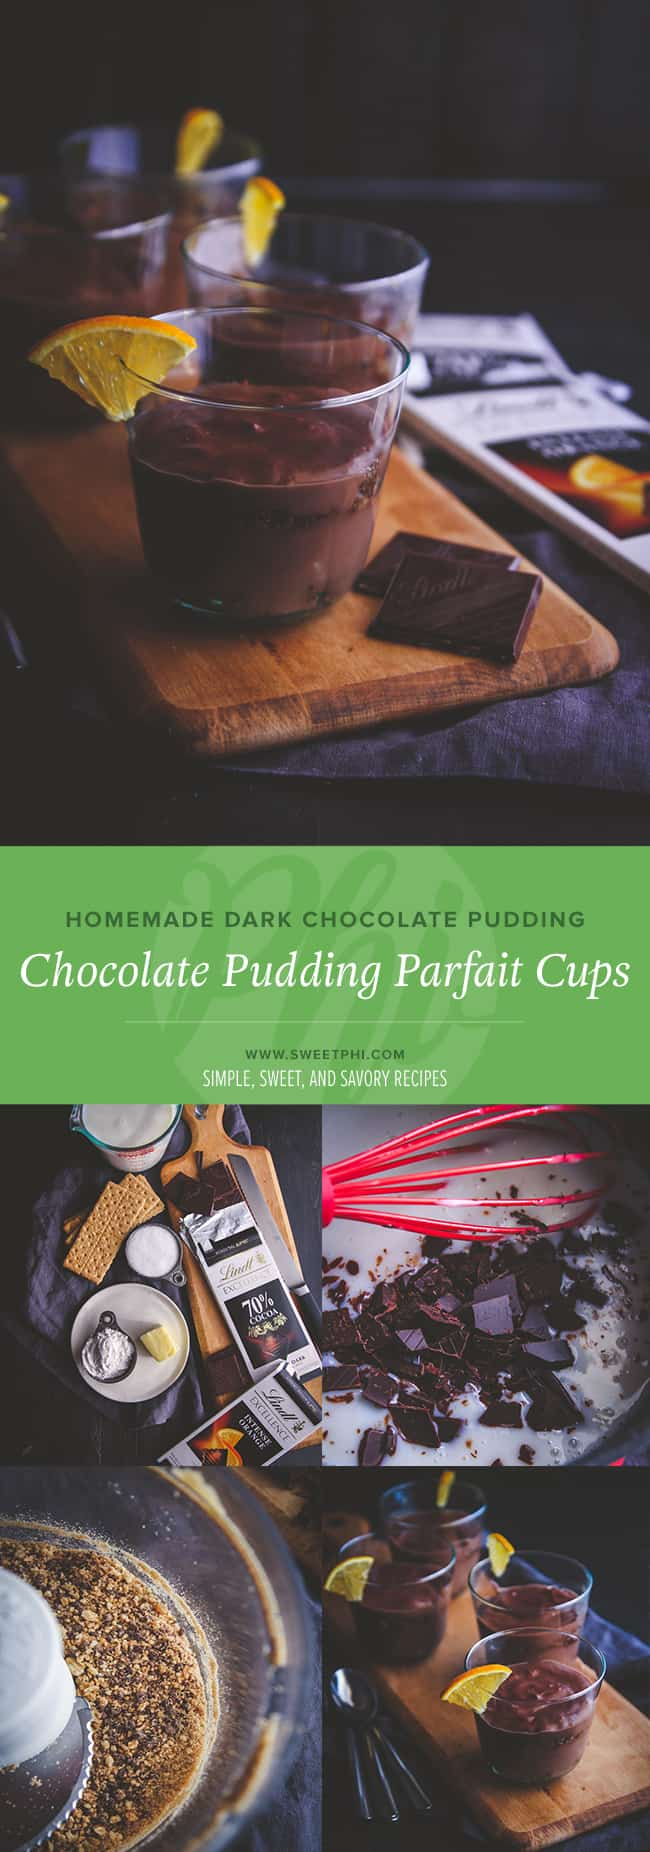 Chocolate pudding parfait cups from @sweetphi - homemade dark chocolate pudding and the perfect summer dessert for family picnics